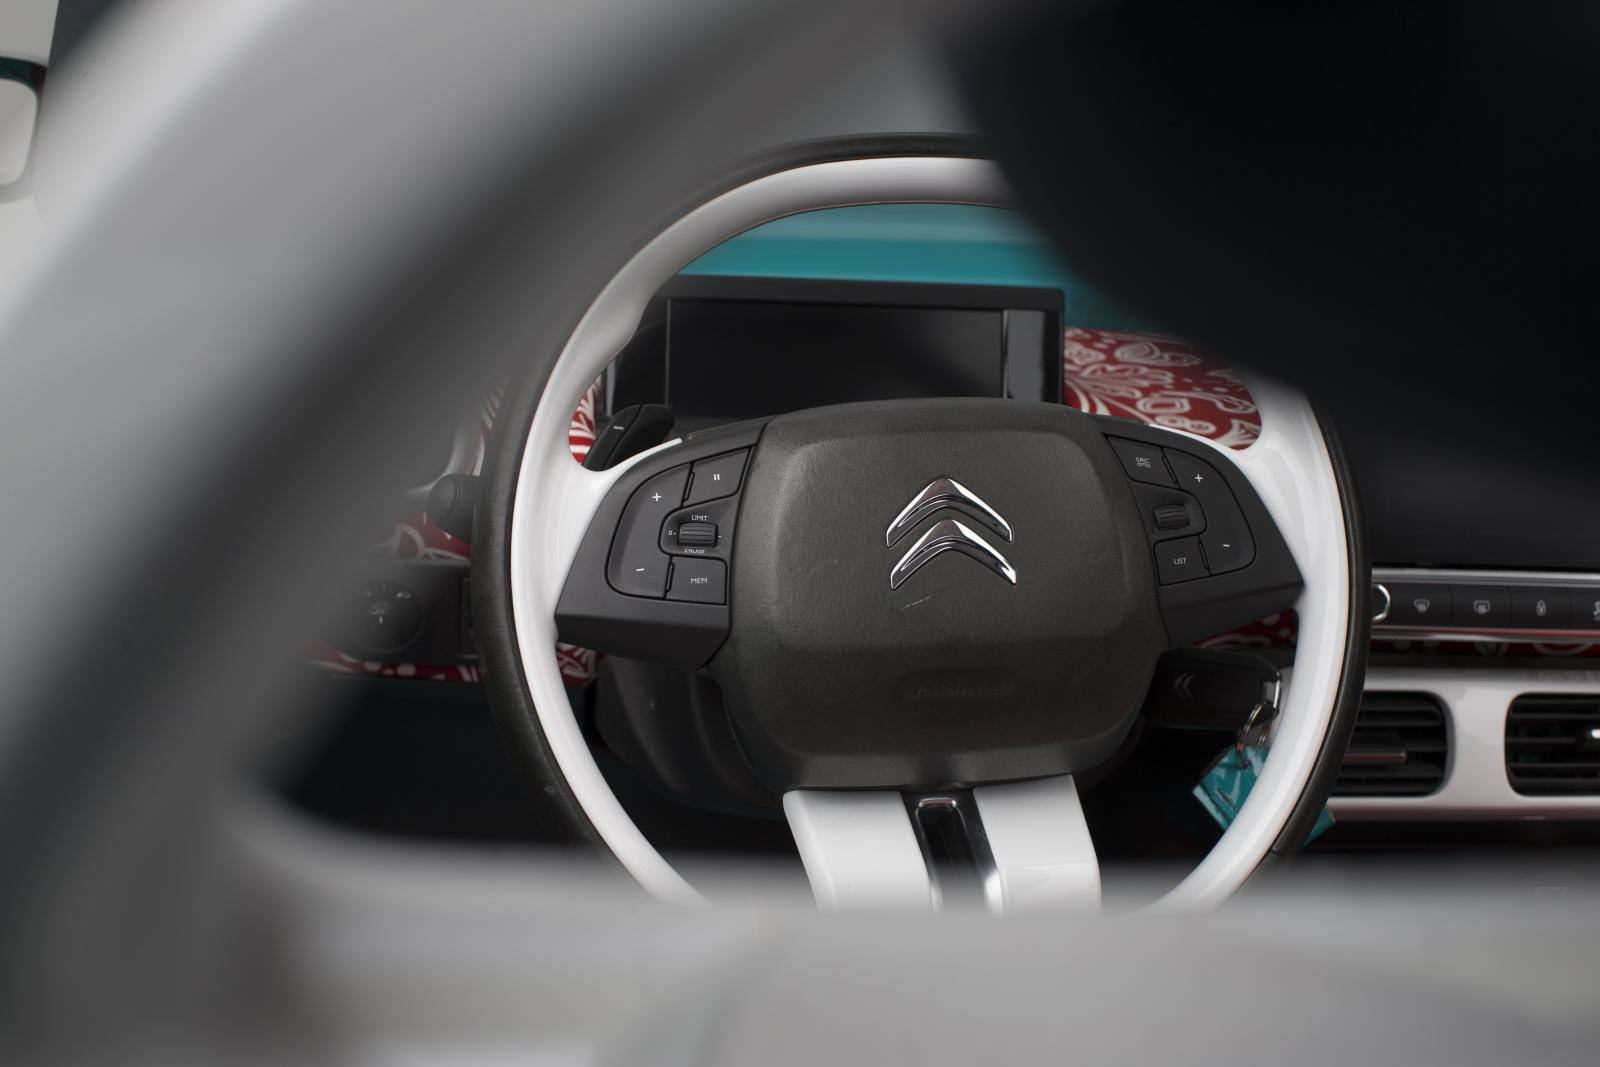 CACTUS M 2015 steering wheel